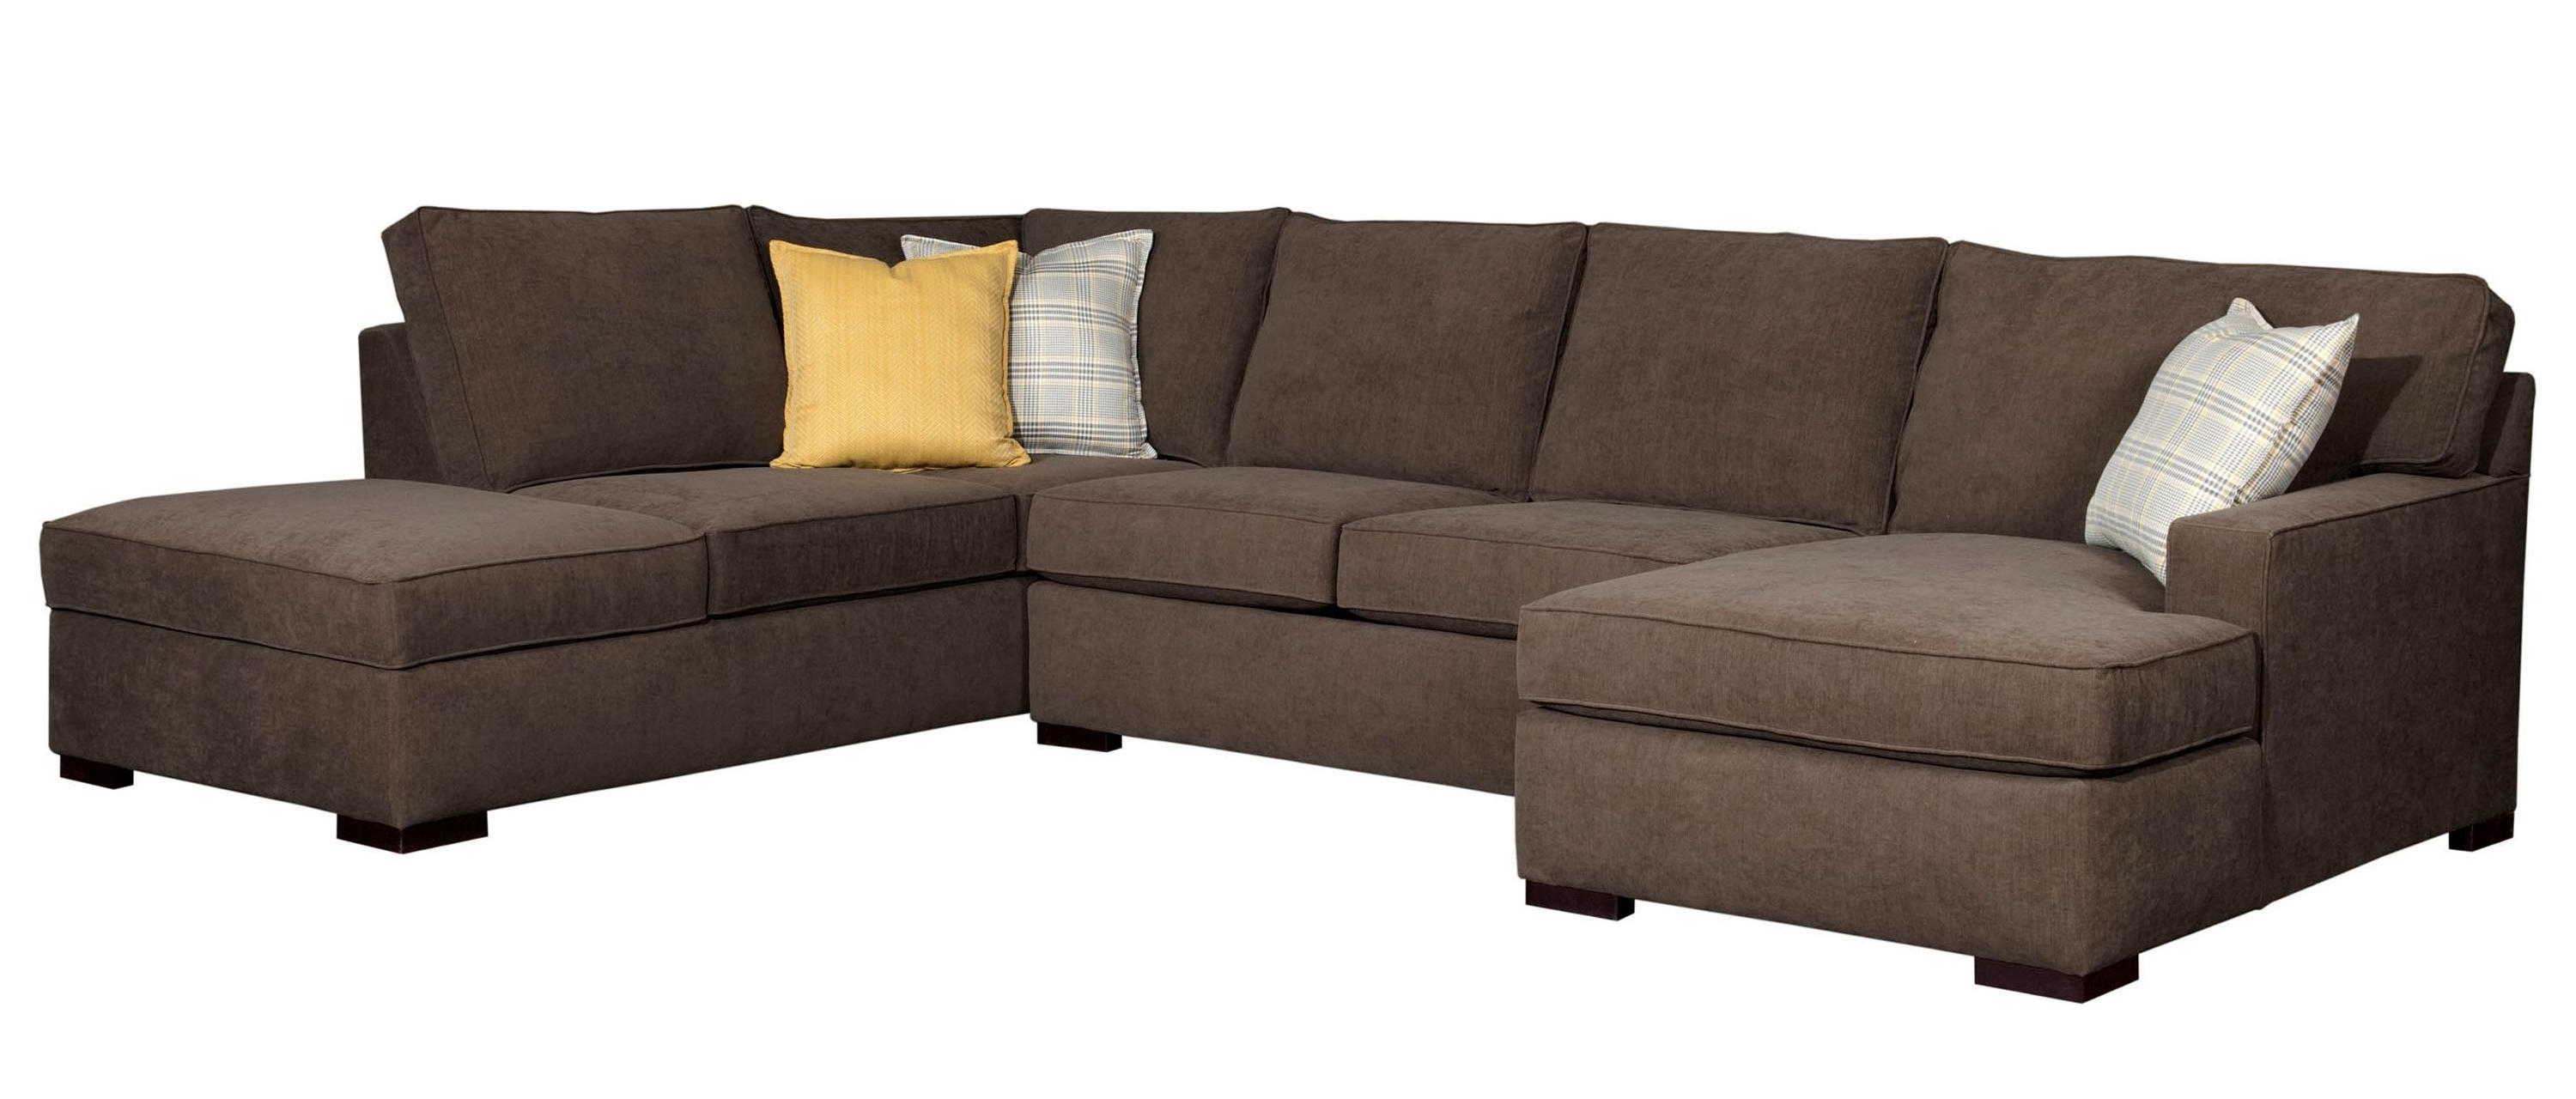 Broyhill Furniture Raphael Contemporary Sectional Sofa With Laf Within Well Known Tuscaloosa Sectional Sofas (View 11 of 15)